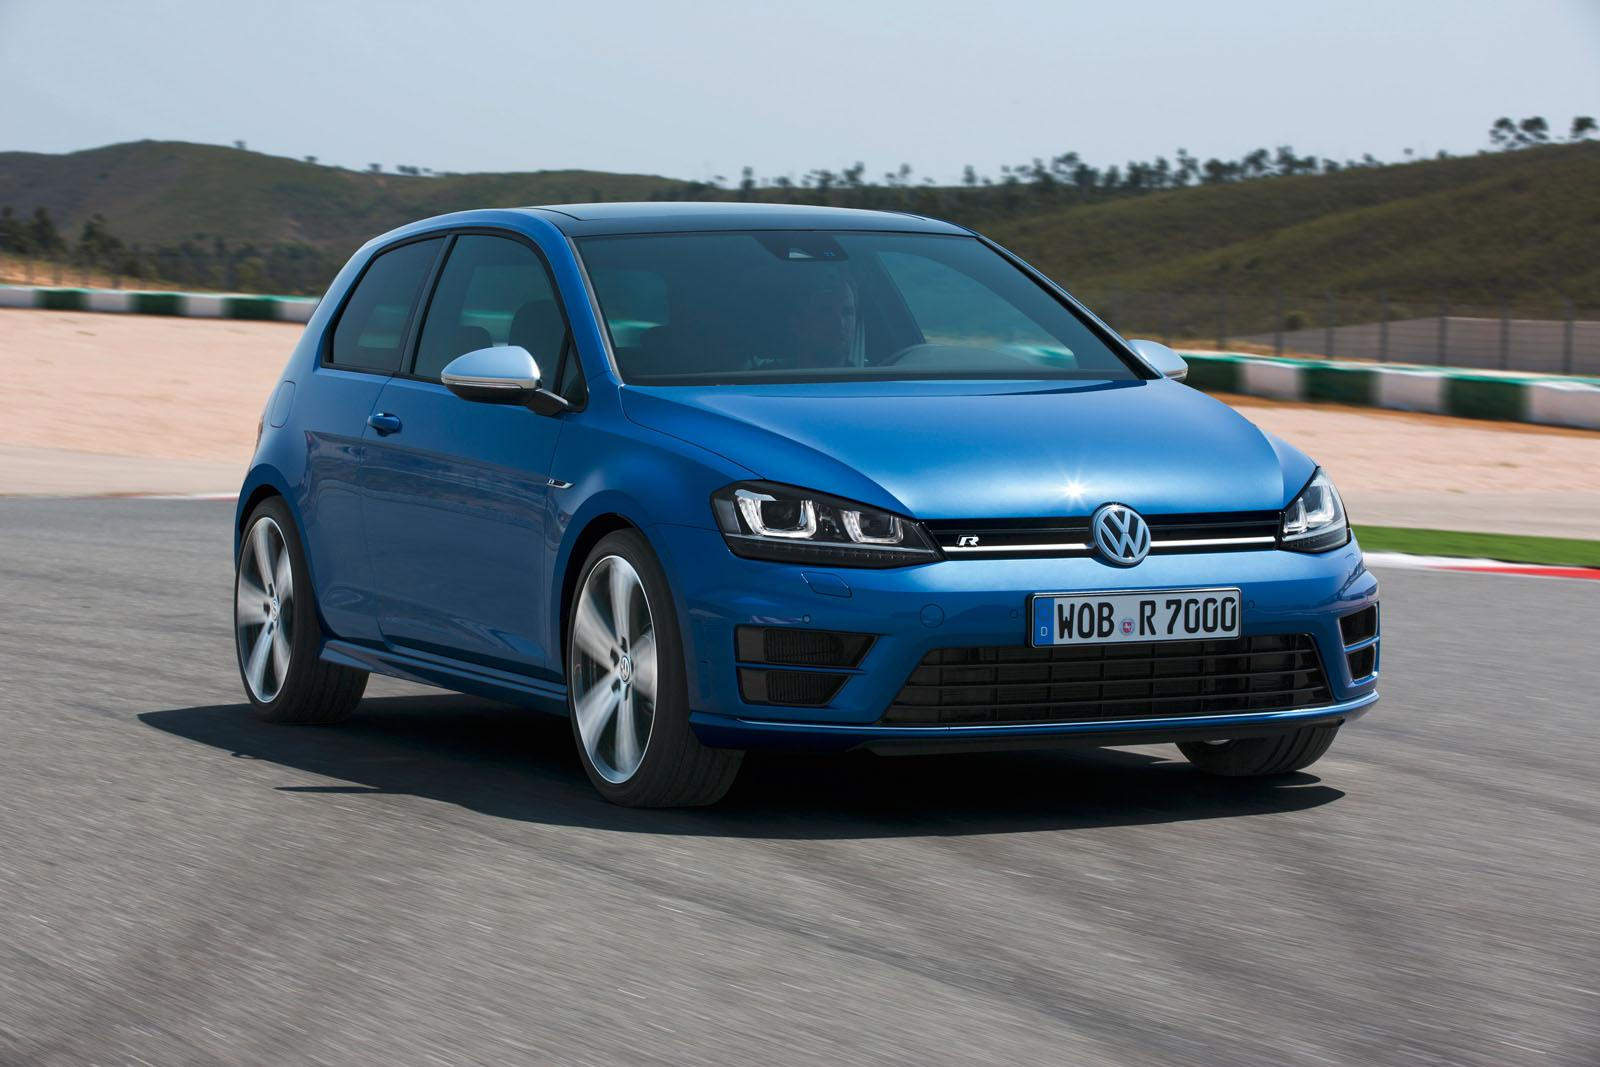 Volkswagen Golf R Evo 275kW concept headed for Beijing